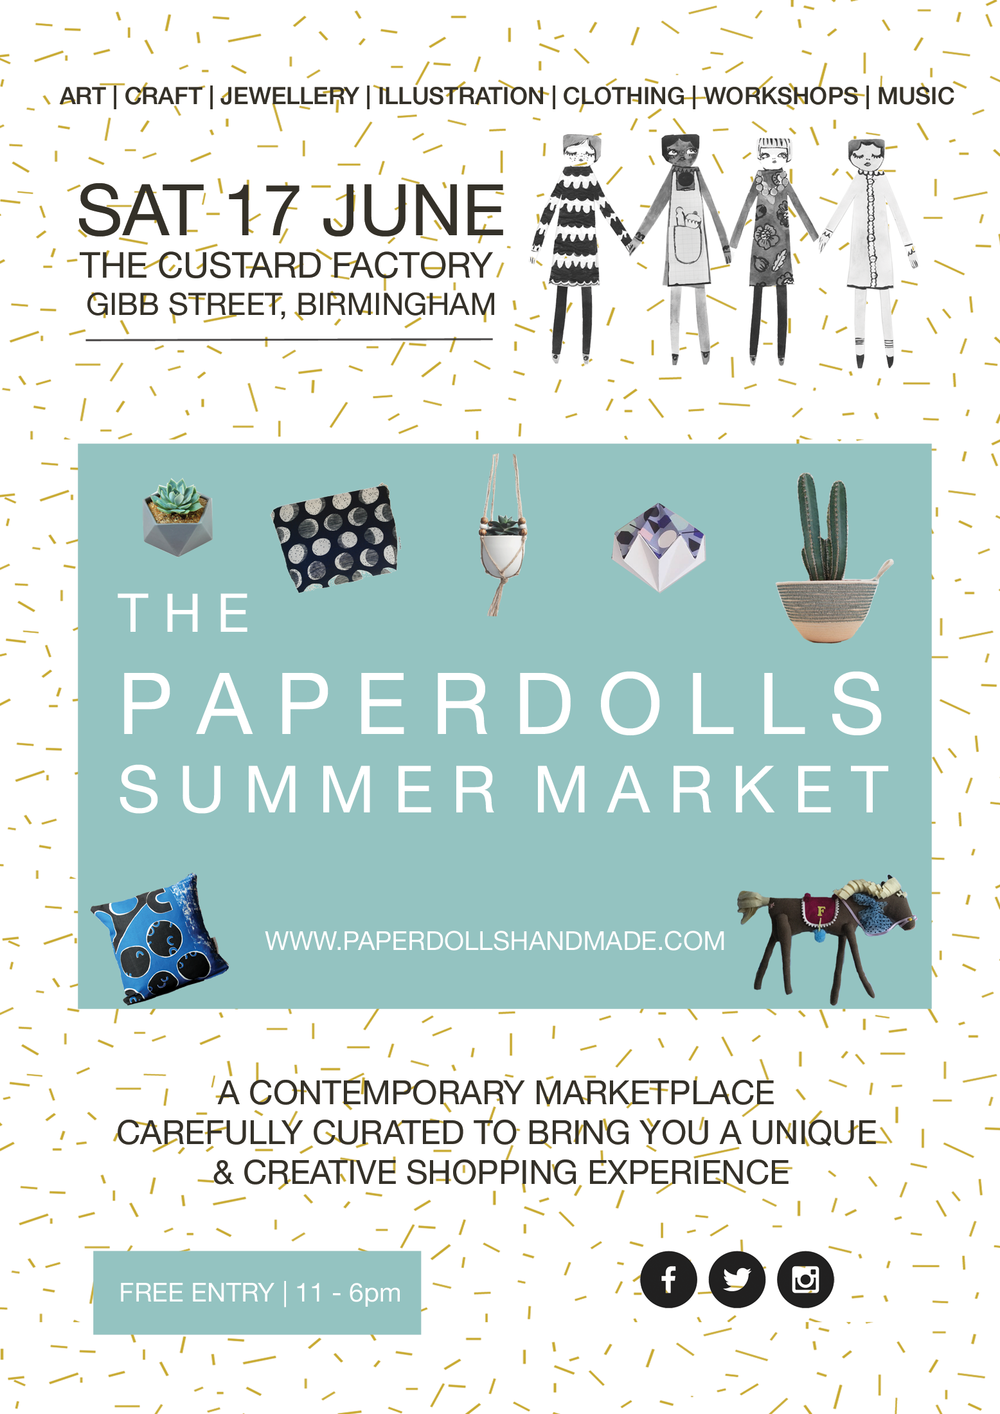 The Paperdolls Summer Market 2017